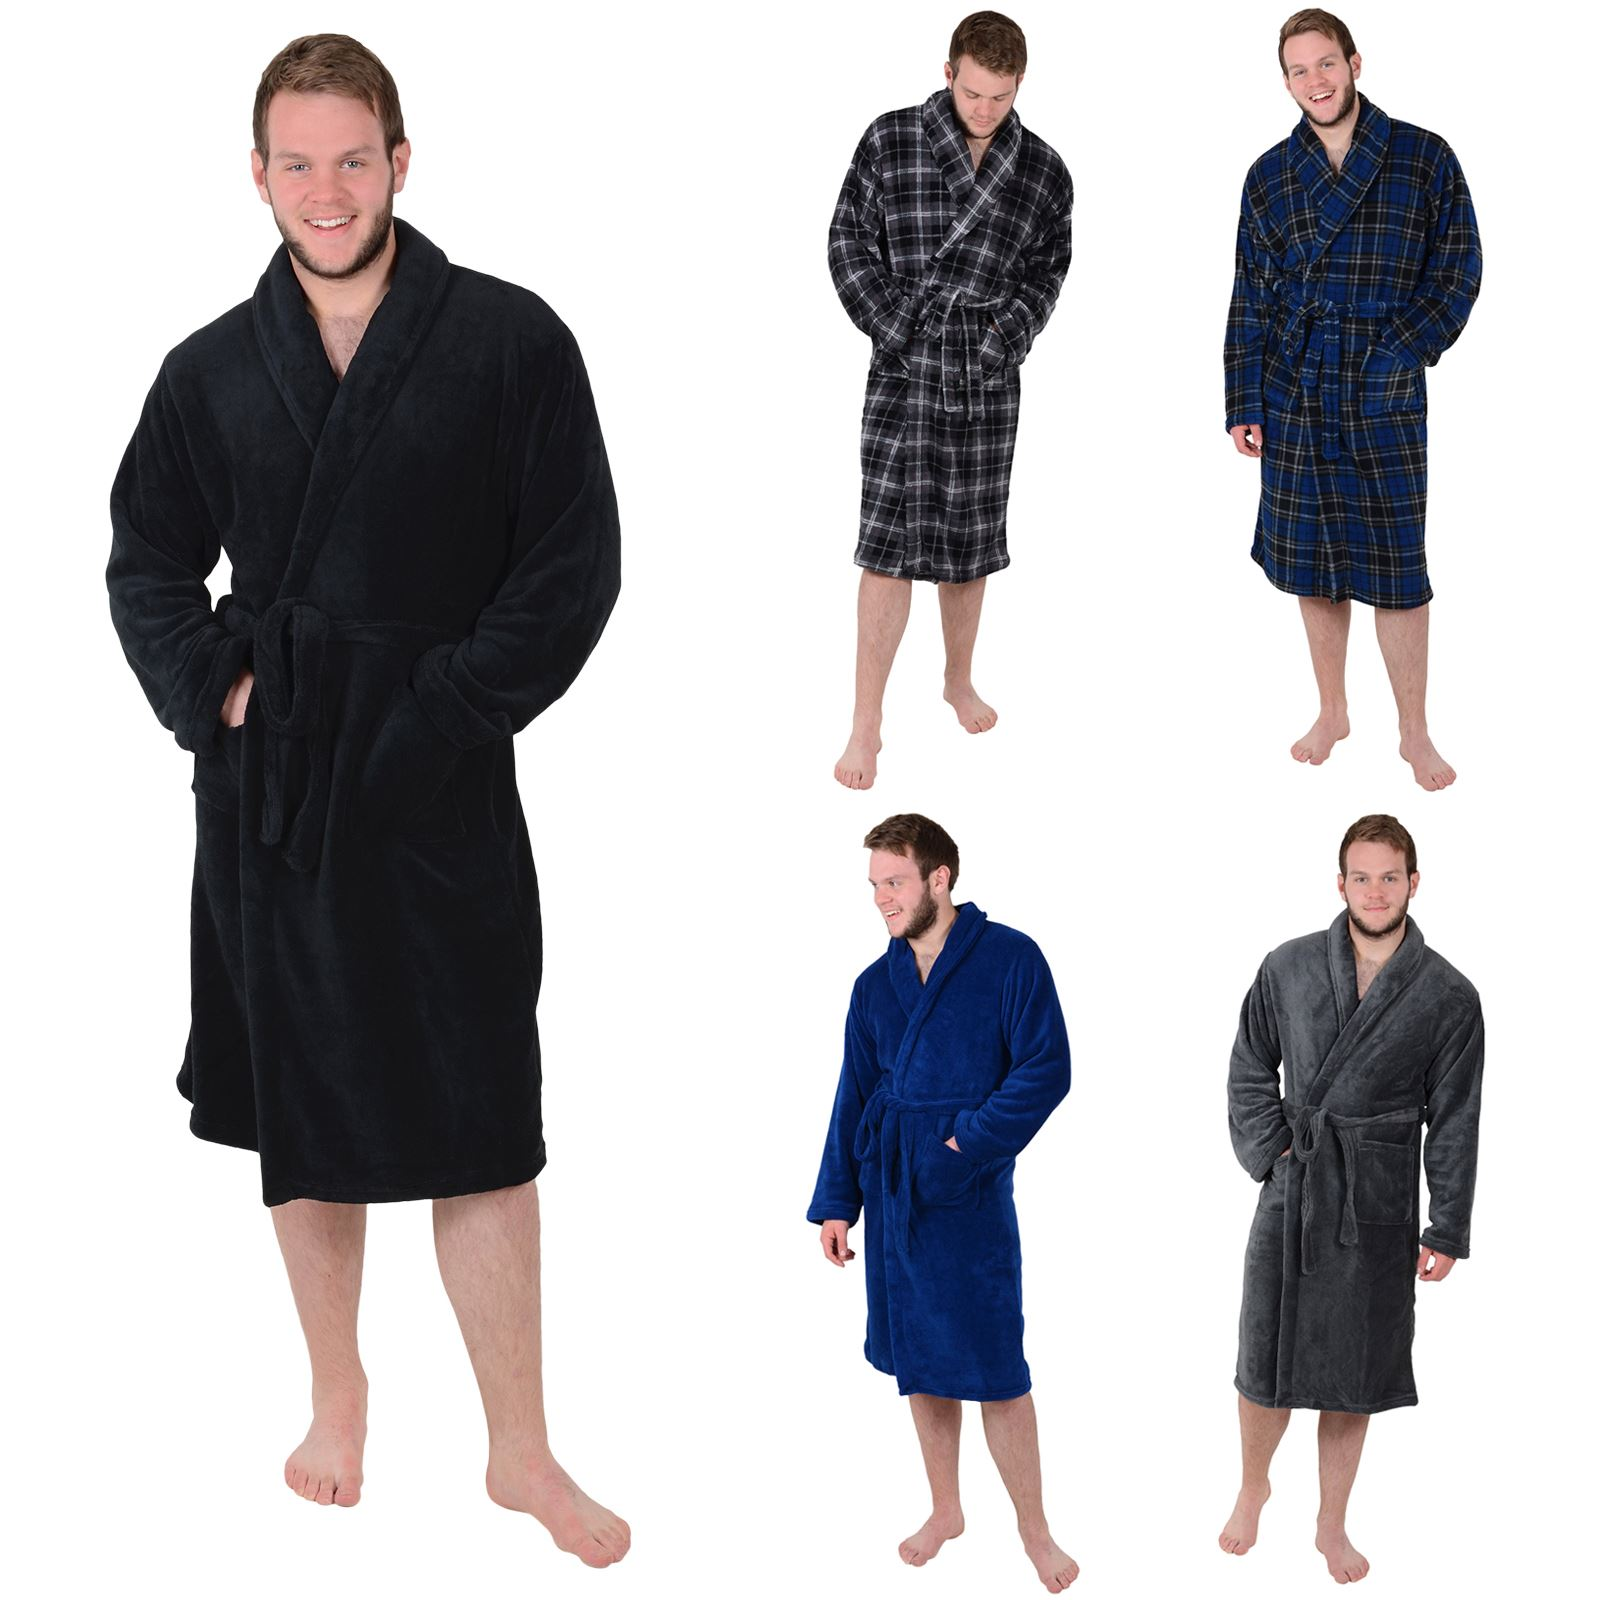 Details about Mens Luxury Coral Fleece Bath Robe Tie Belt Dressing Gown  Housecoat Bathrobe 471f001df